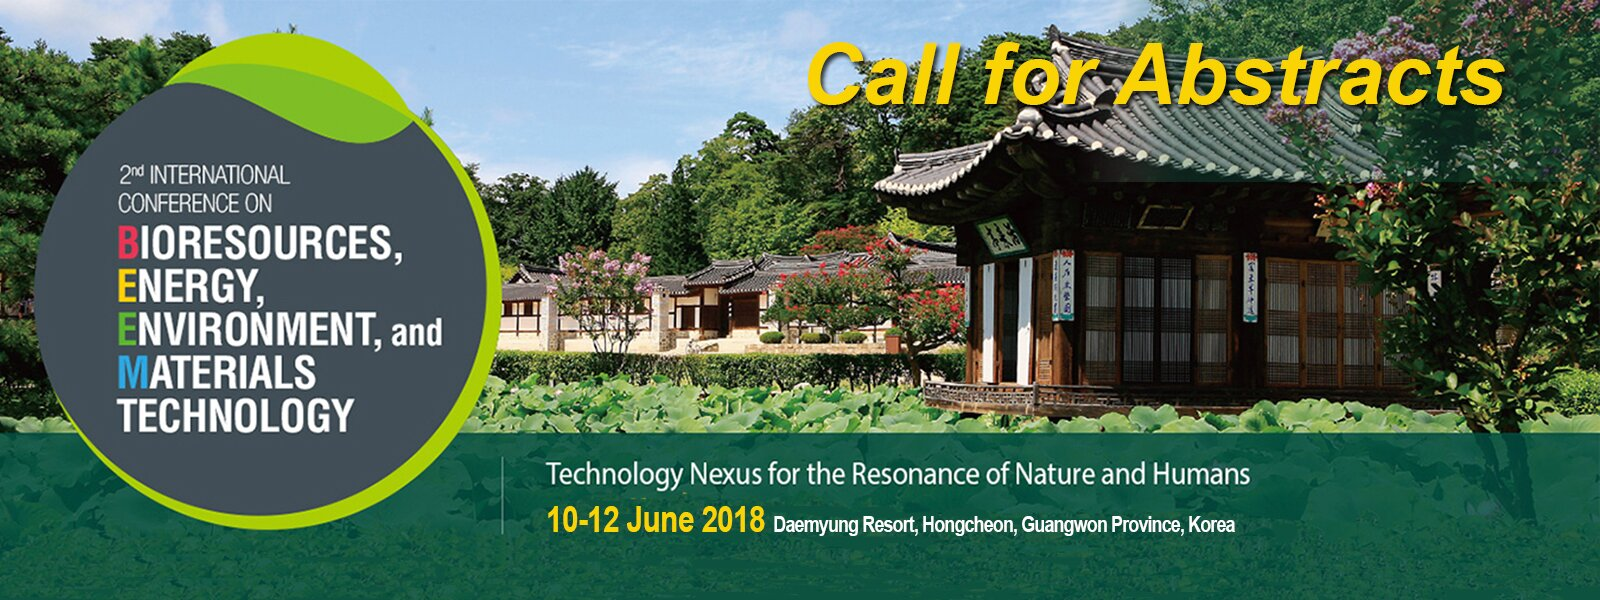 The 2nd International Conference on Bioresources, Energy, Environment, and Materials Technology: Call for Abstracts